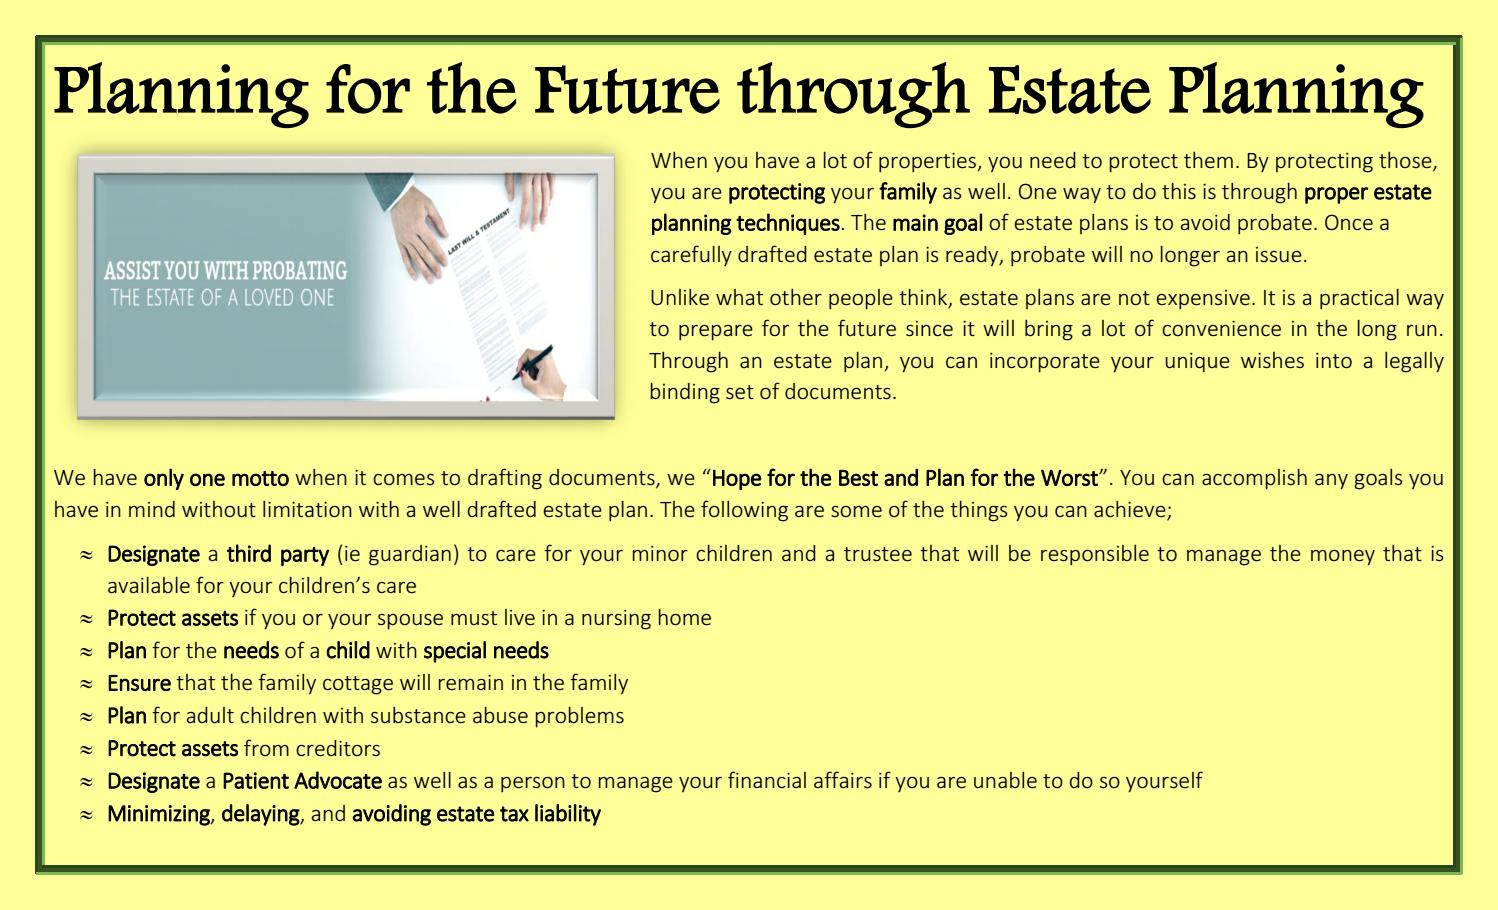 Planning for the future through estate planning by michael van planning for the future through estate planning by michael van tubergen issuu solutioingenieria Gallery